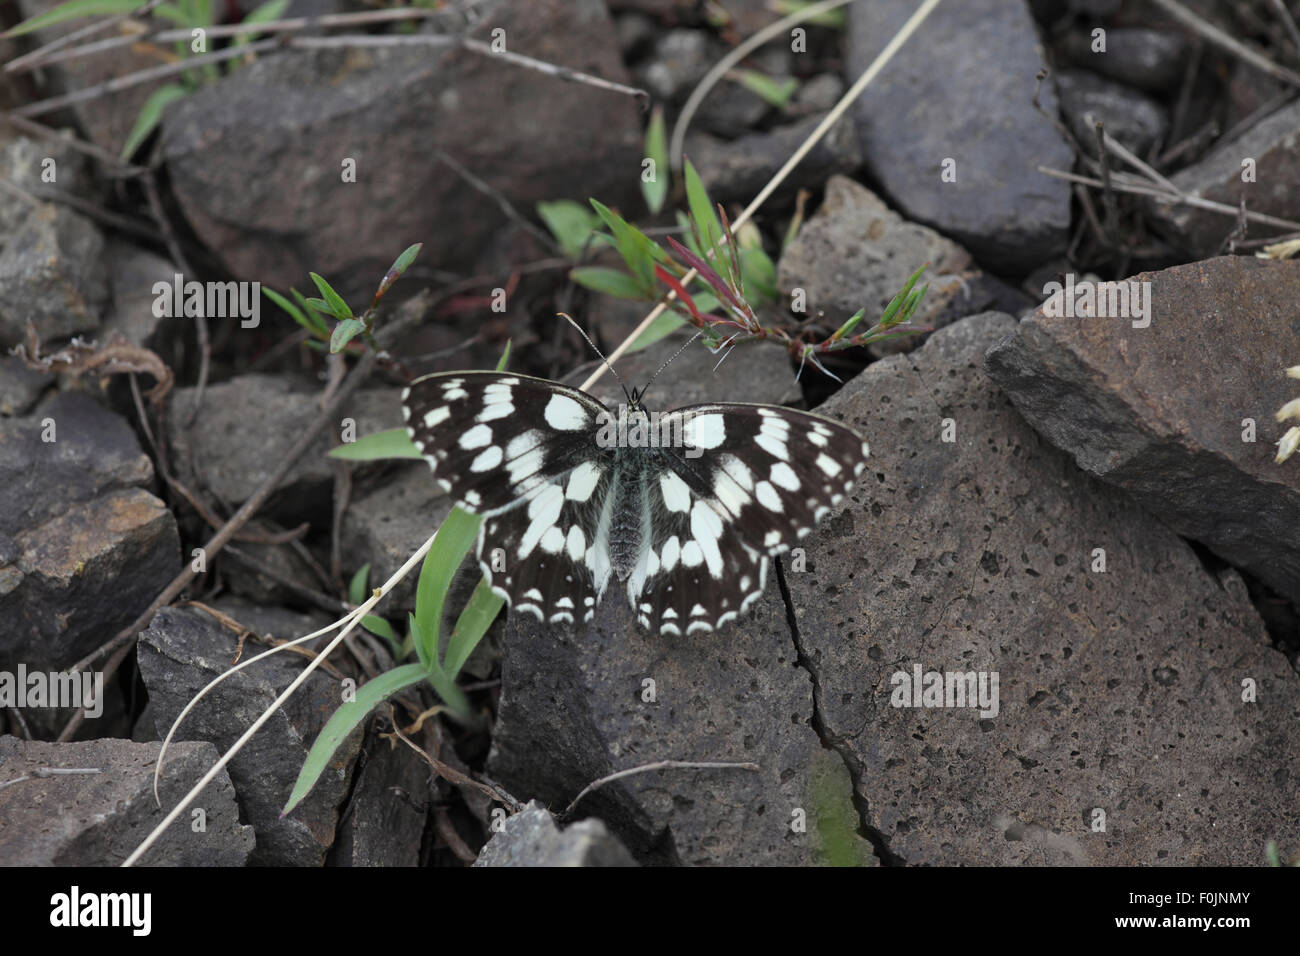 Marbled white Melanorga galanthea at rest on rocks - Stock Image